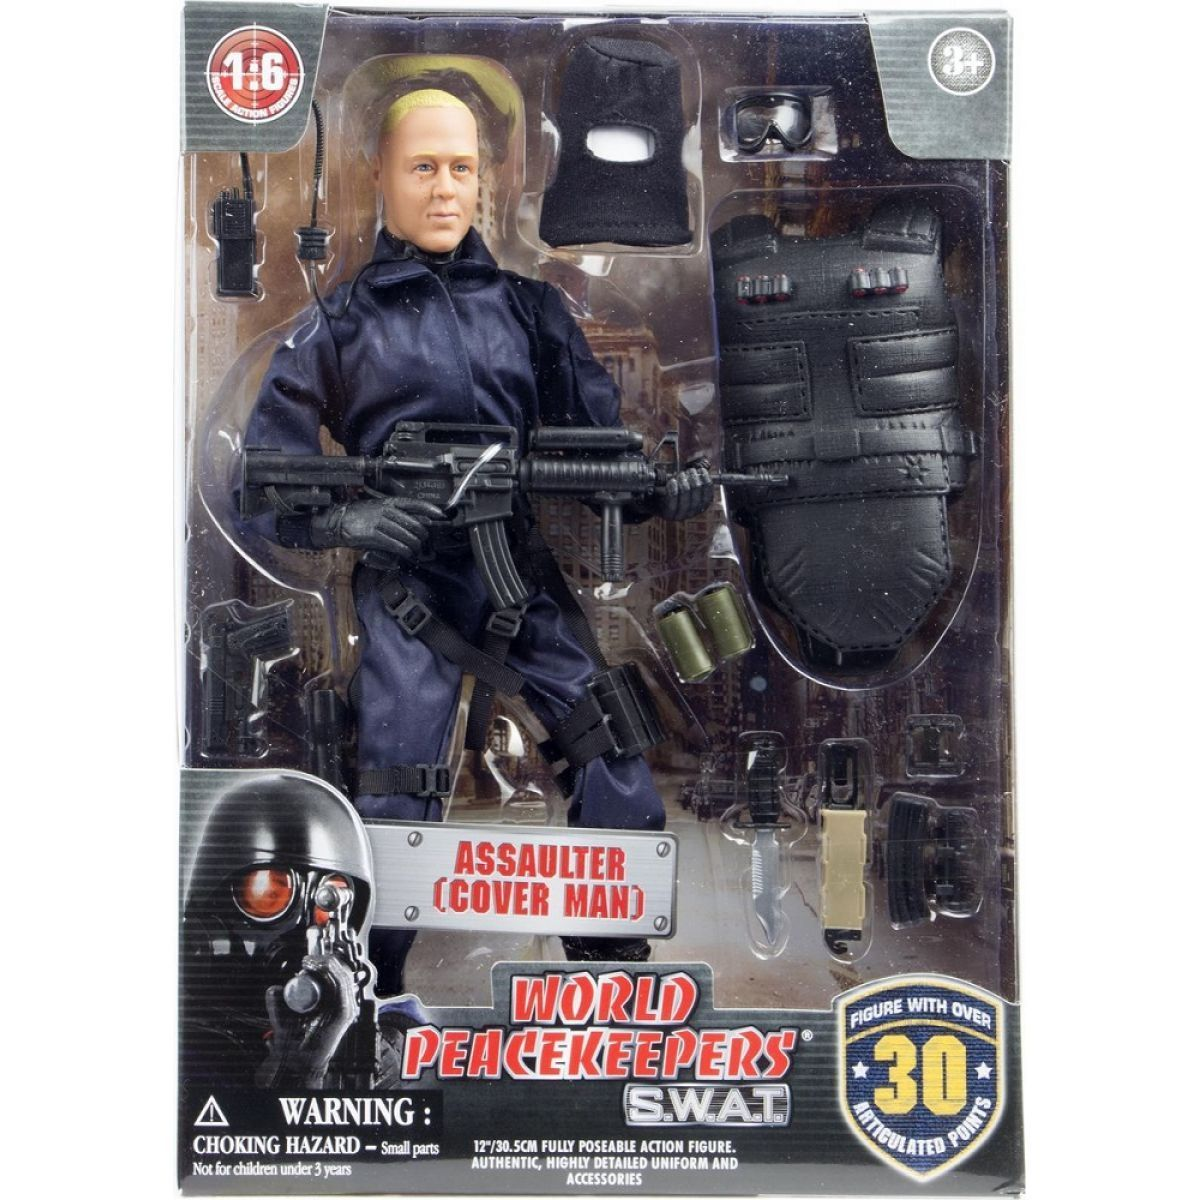 World Peacekeepers S.W.A.T. figurka 305 cm - Assaulter Cover Man